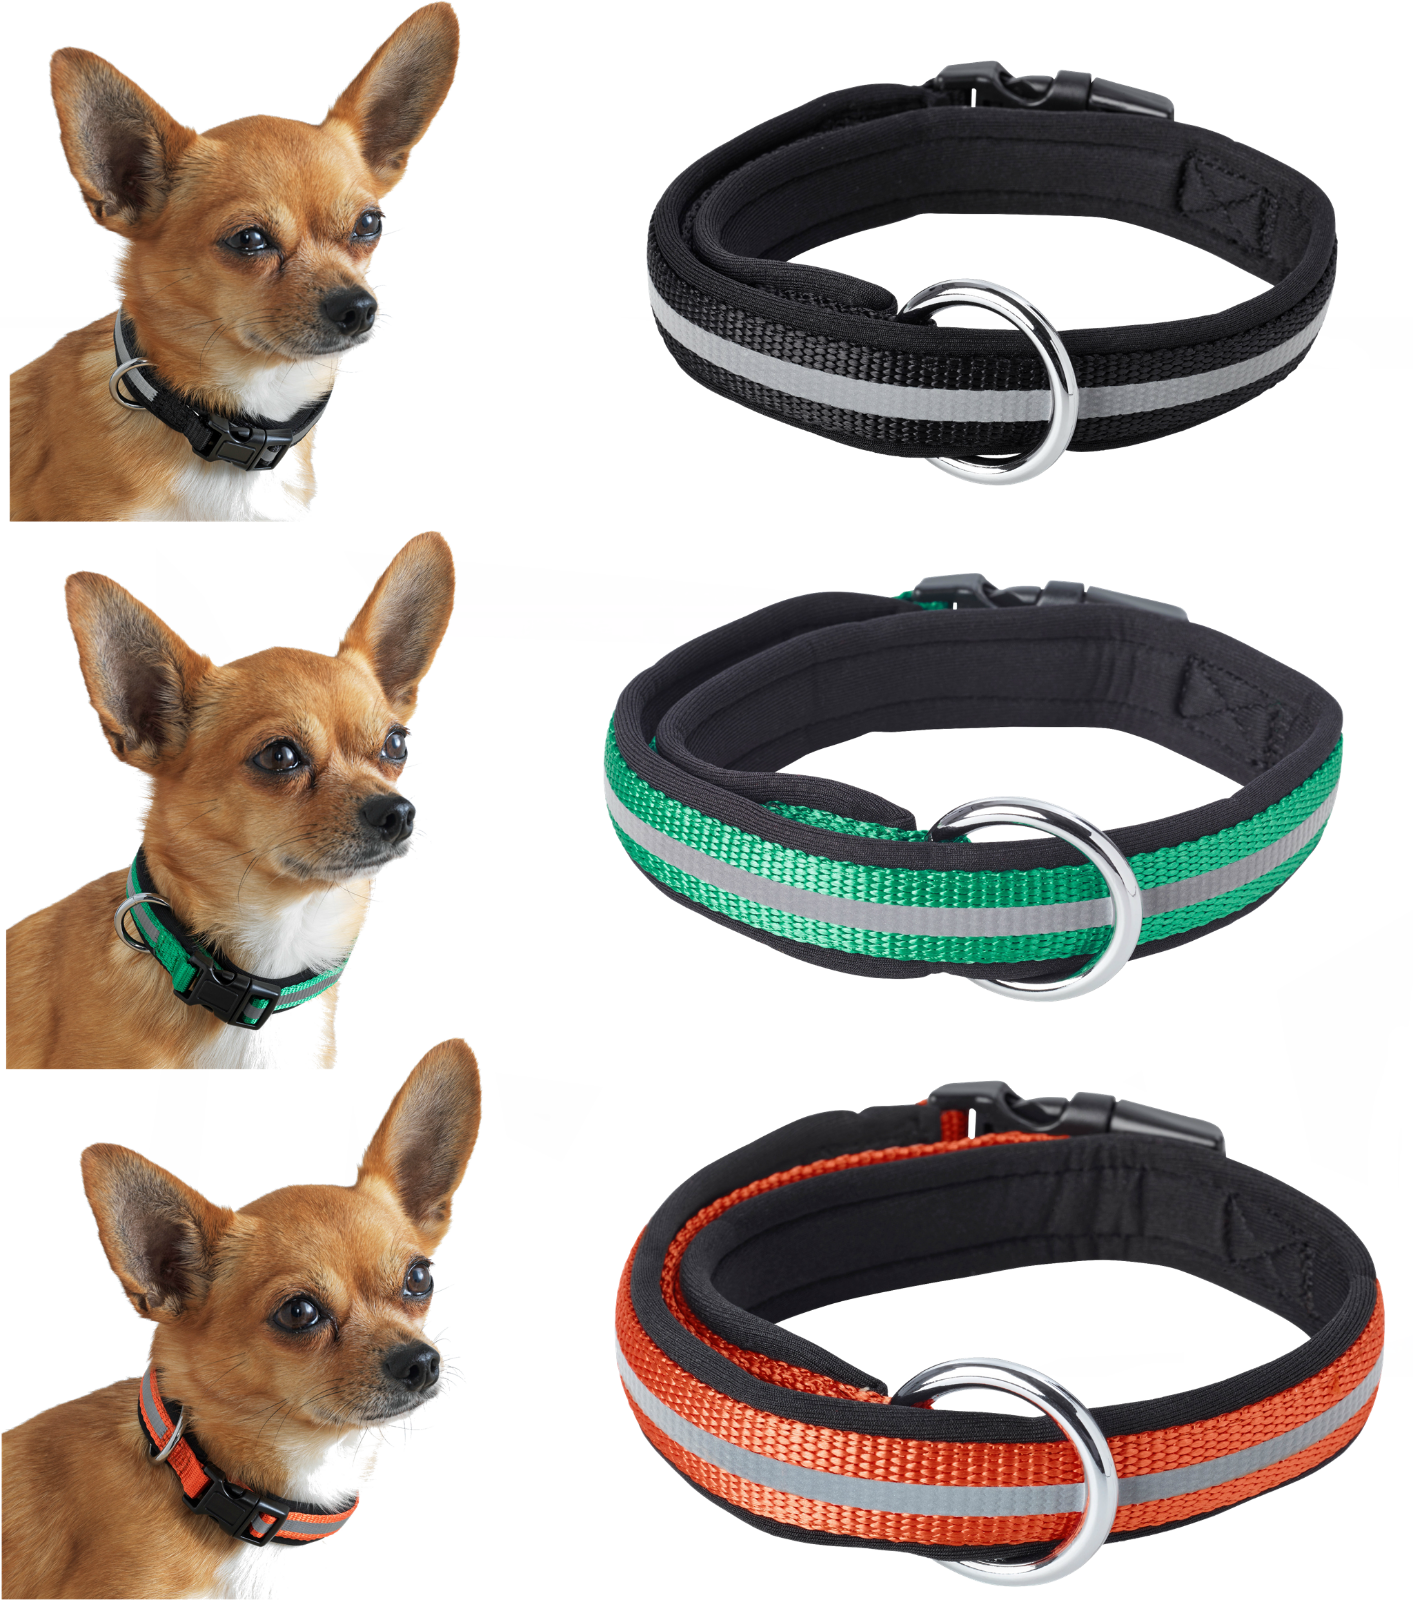 """Reflective Padded Collar for Small Size Dogs up to 11 lbs 5kg Neck Size 6¼ - 11"""" - $16.99"""